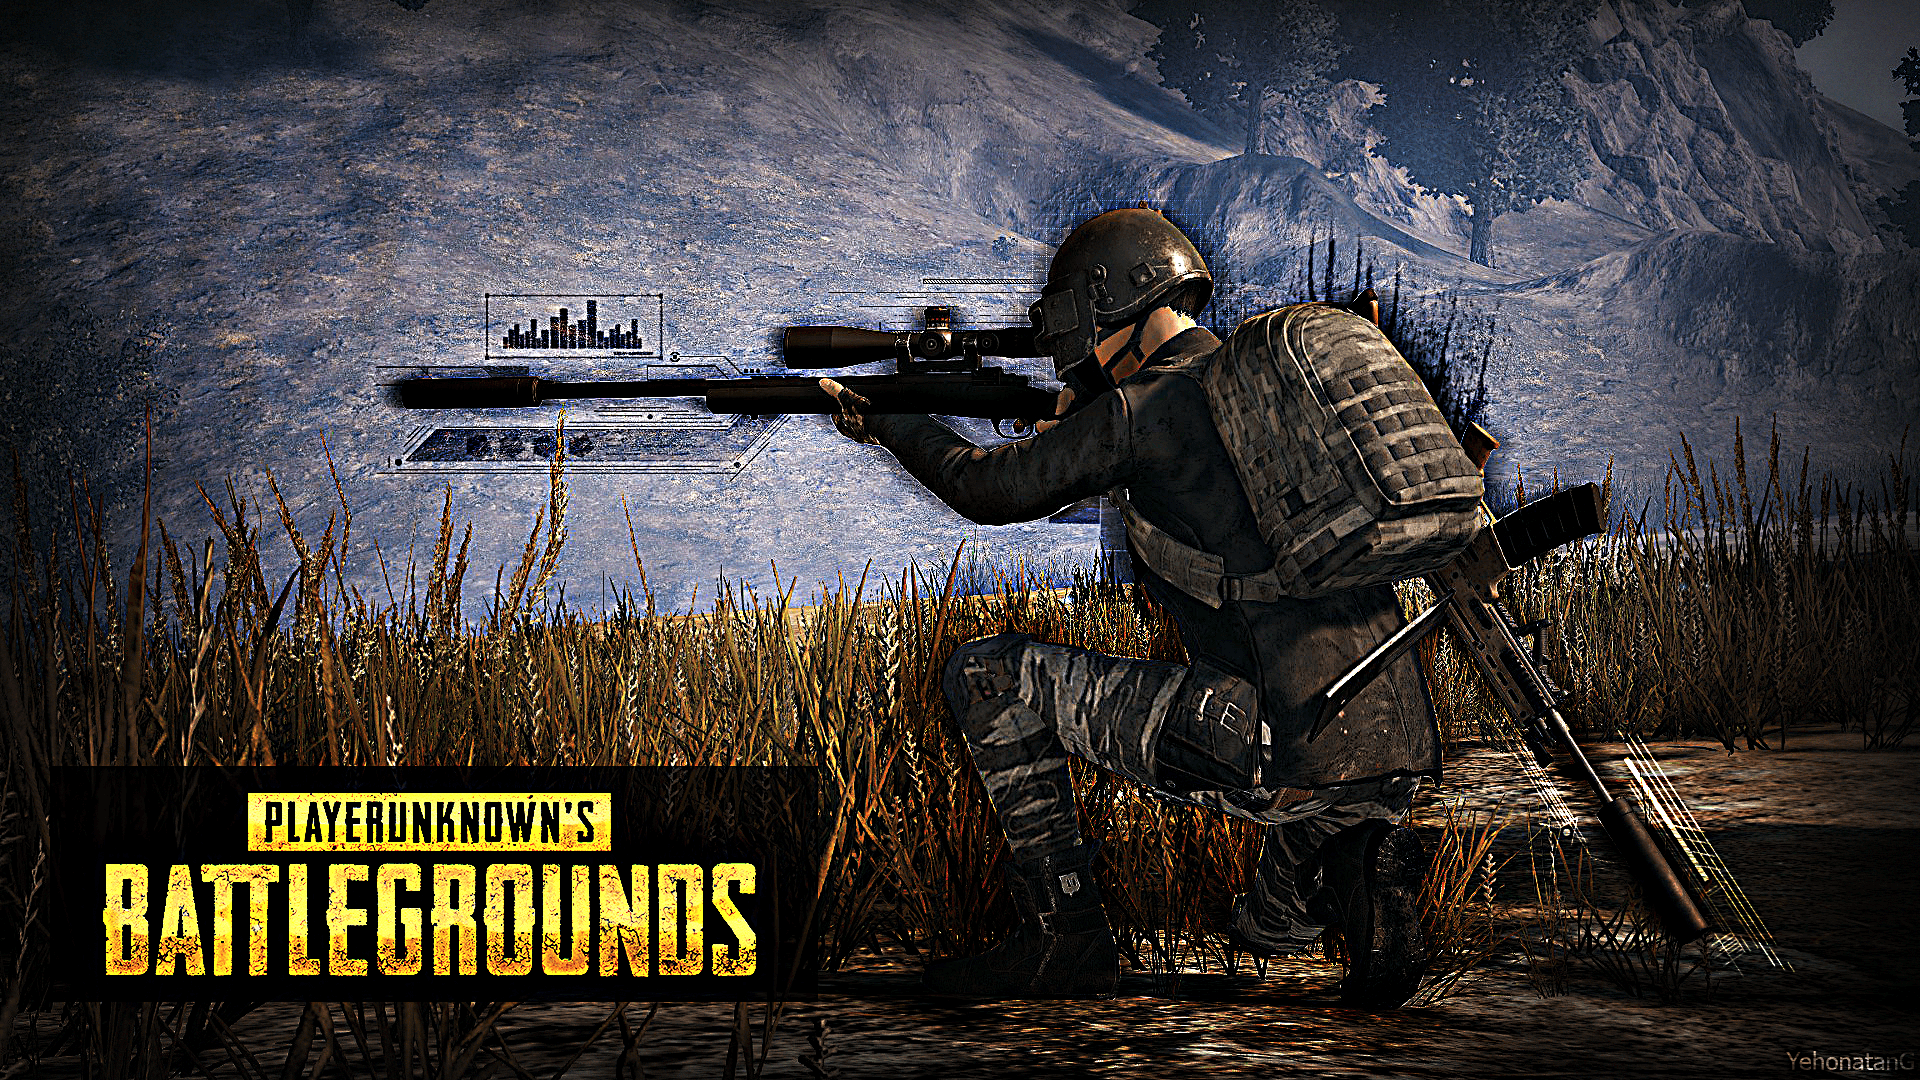 Top 13 Pubg Wallpapers In Full Hd For Pc And Phone: PUBG HD Wallpapers